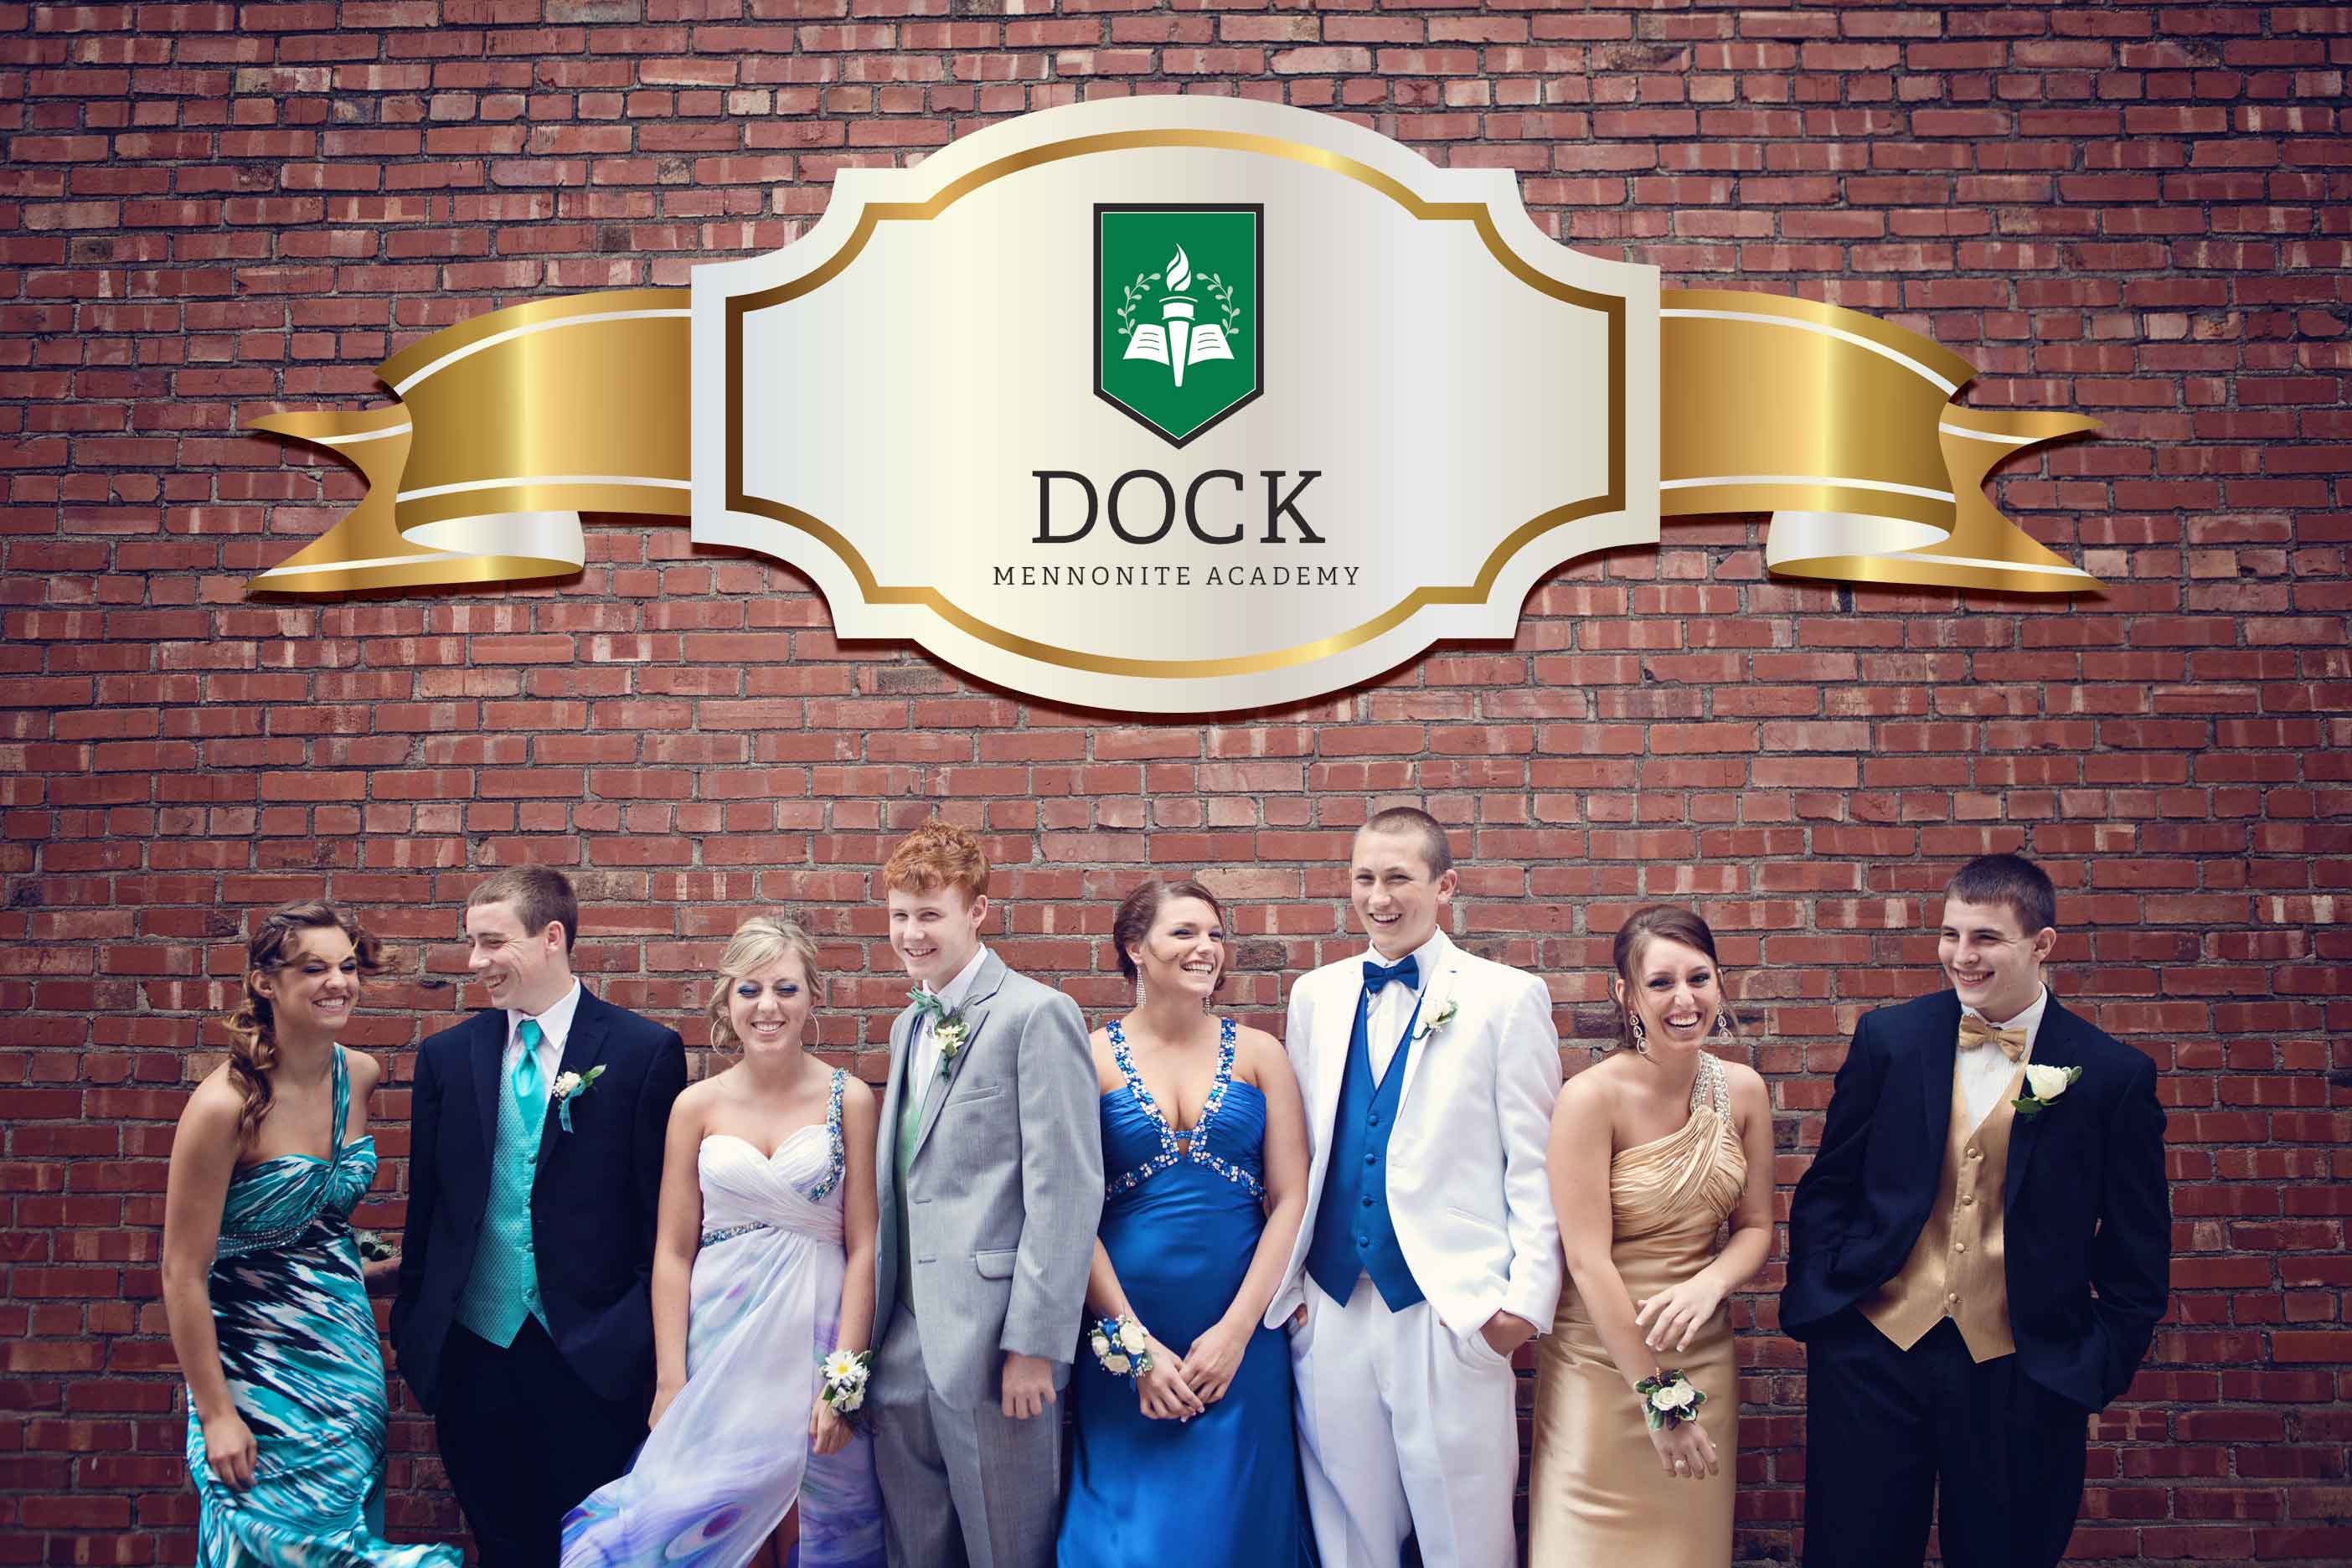 dock mennonite academy prom